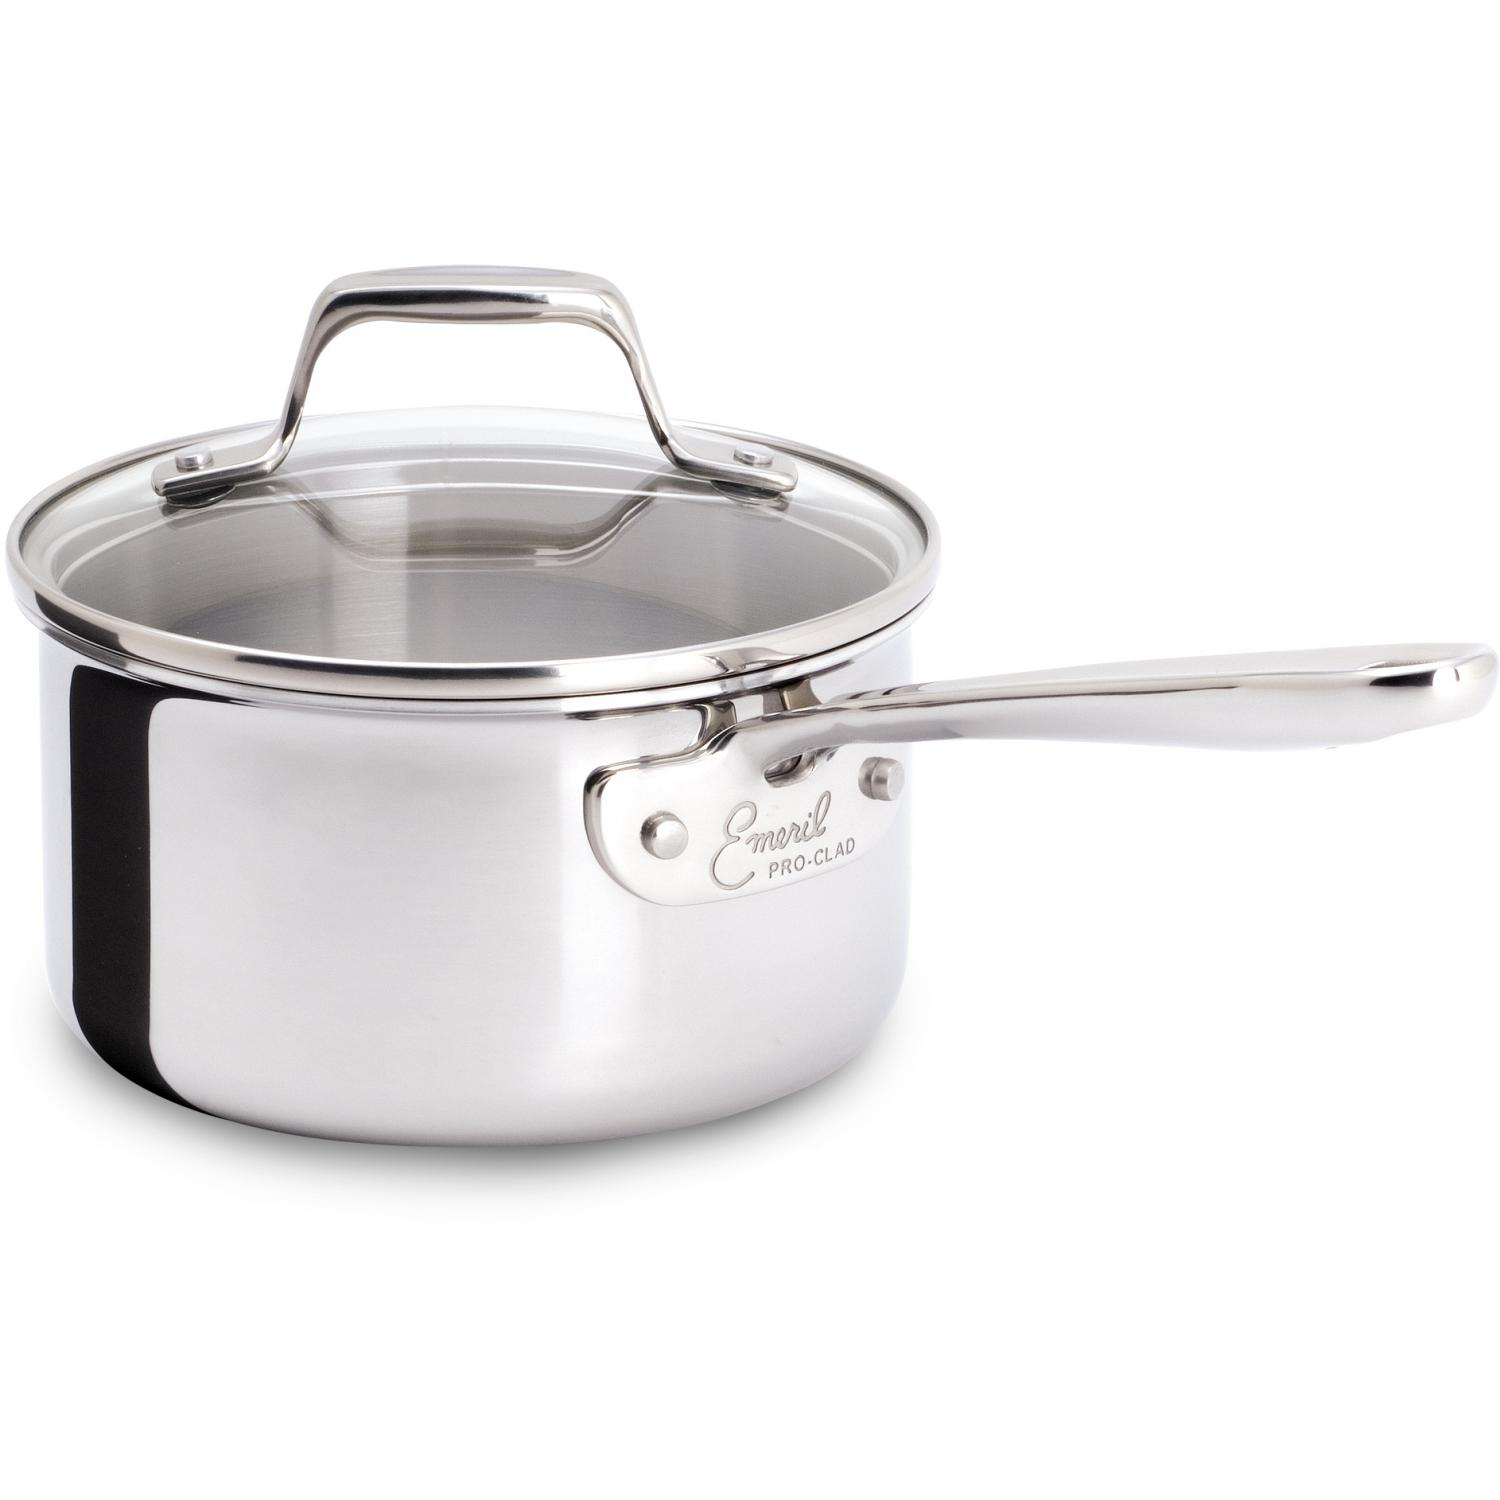 Emerilware By All-Clad 1-Quart Pro-Clad Stainless Sauce Pan And Lid - E9832164